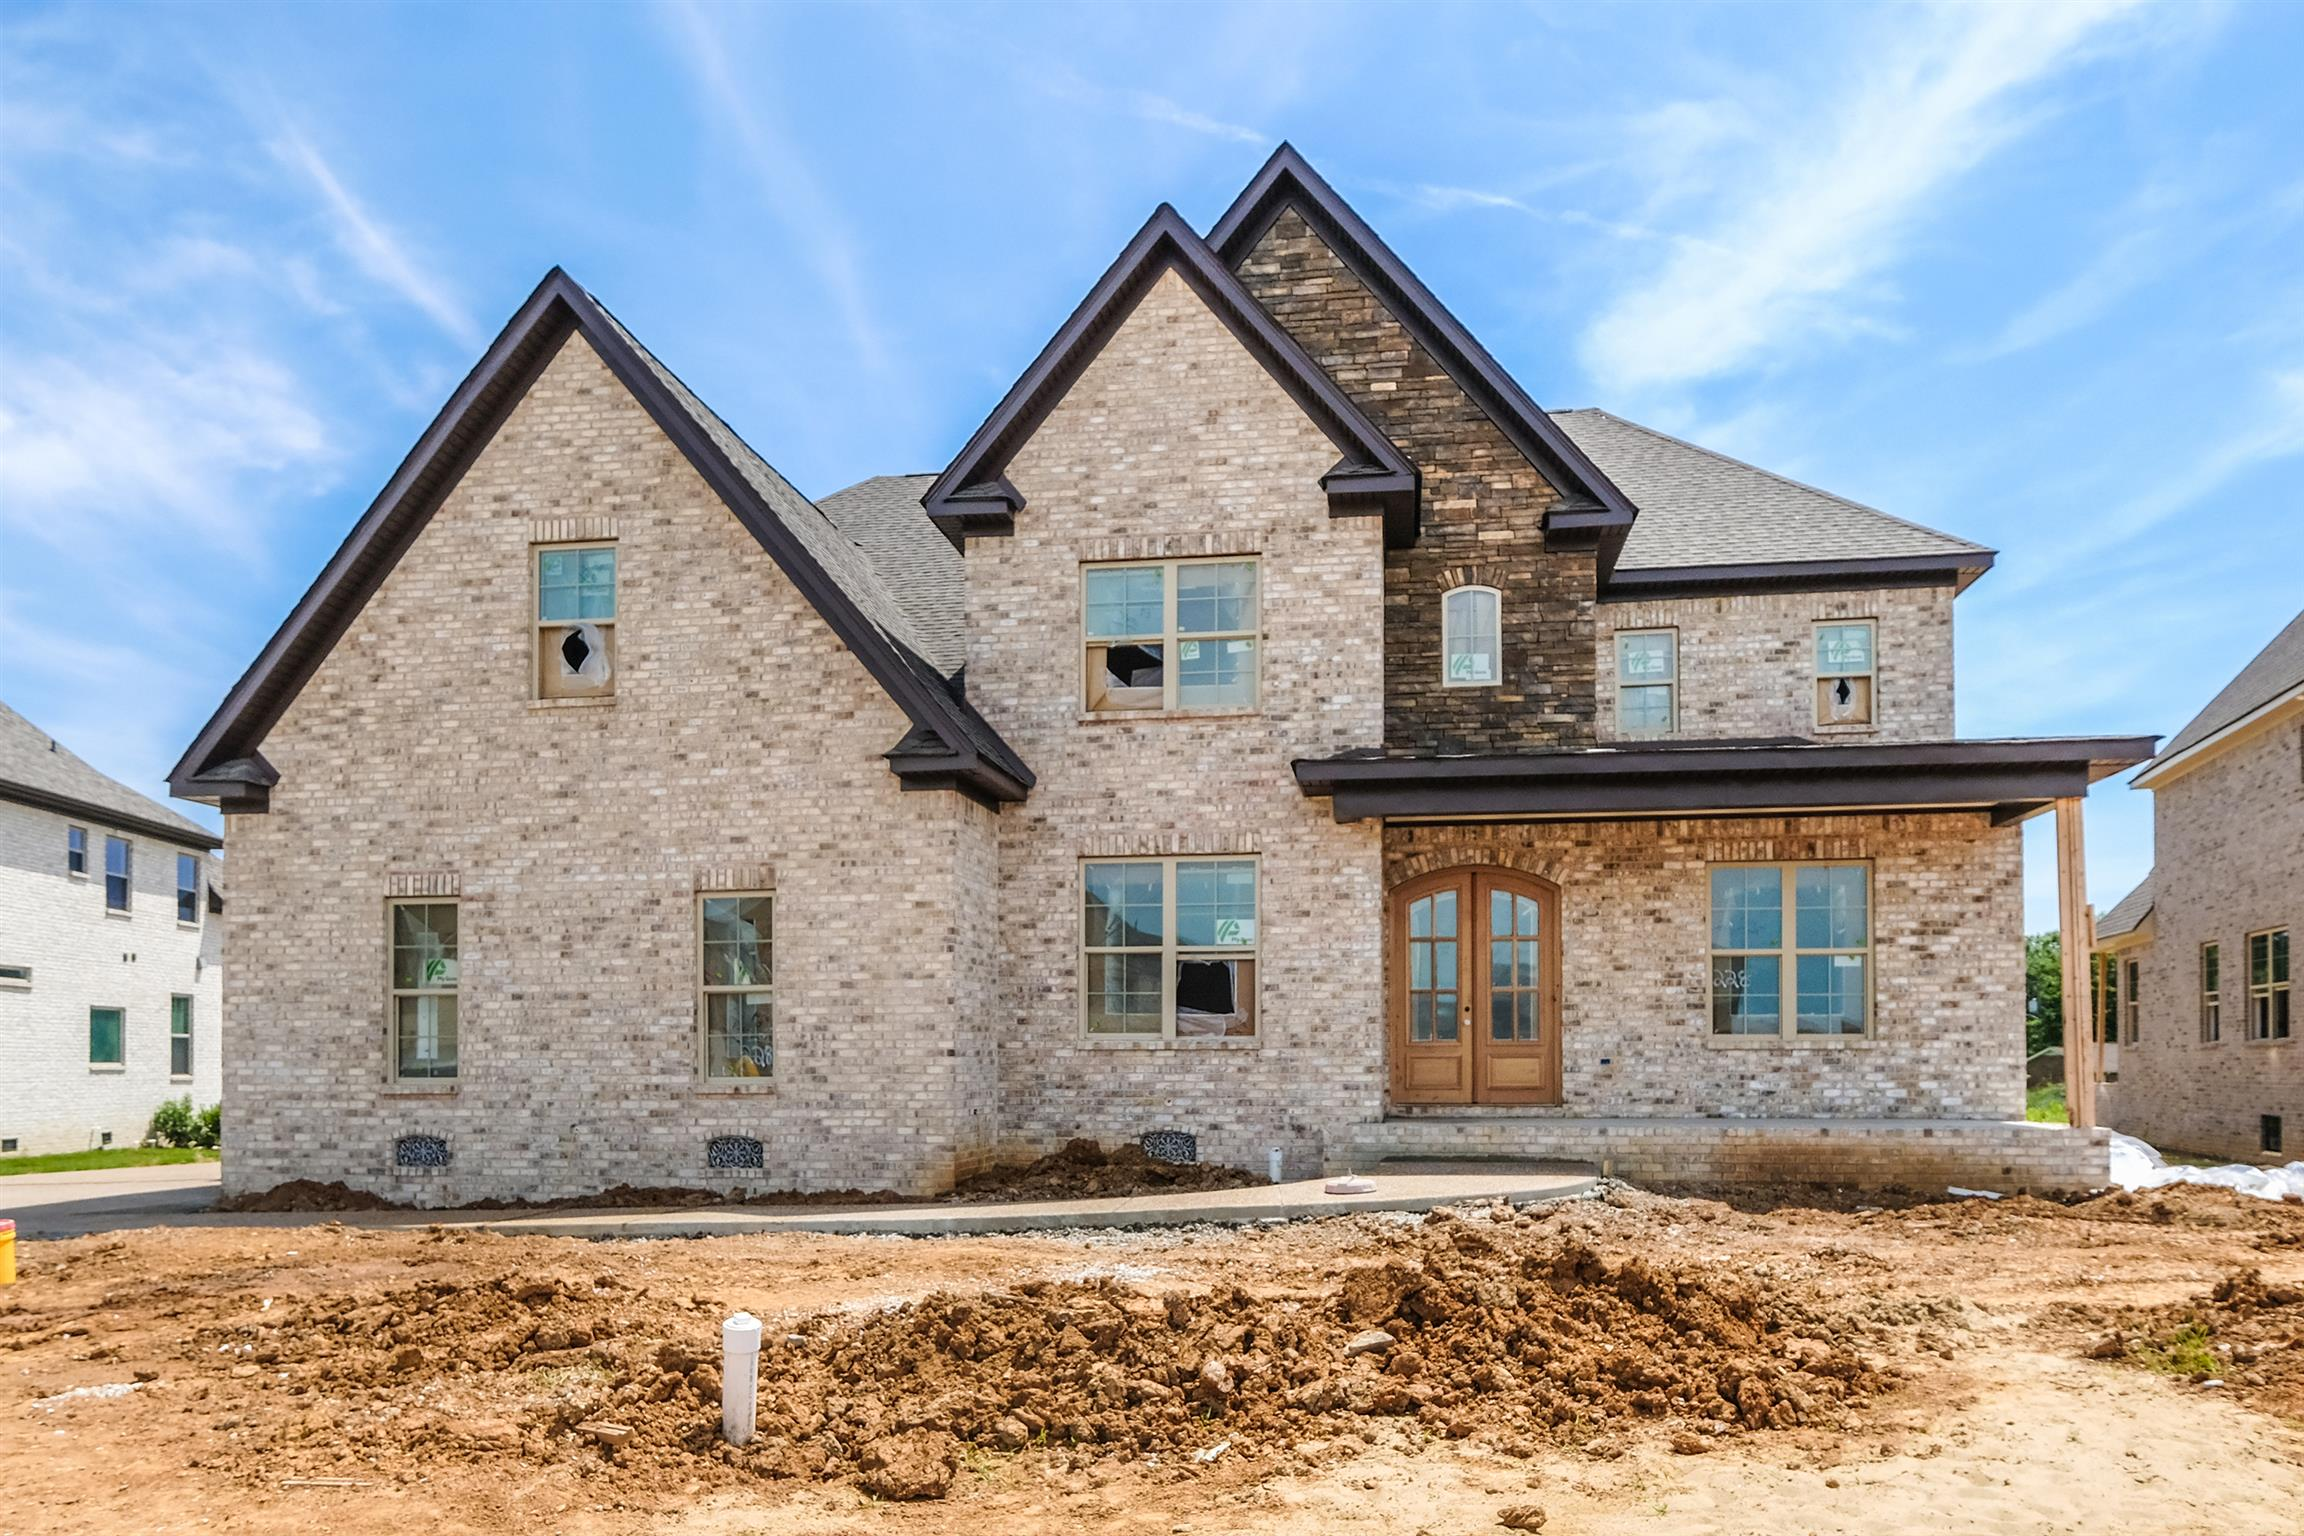 2037 Autumn Ridge Way (Lot 228), Spring Hill, Tennessee